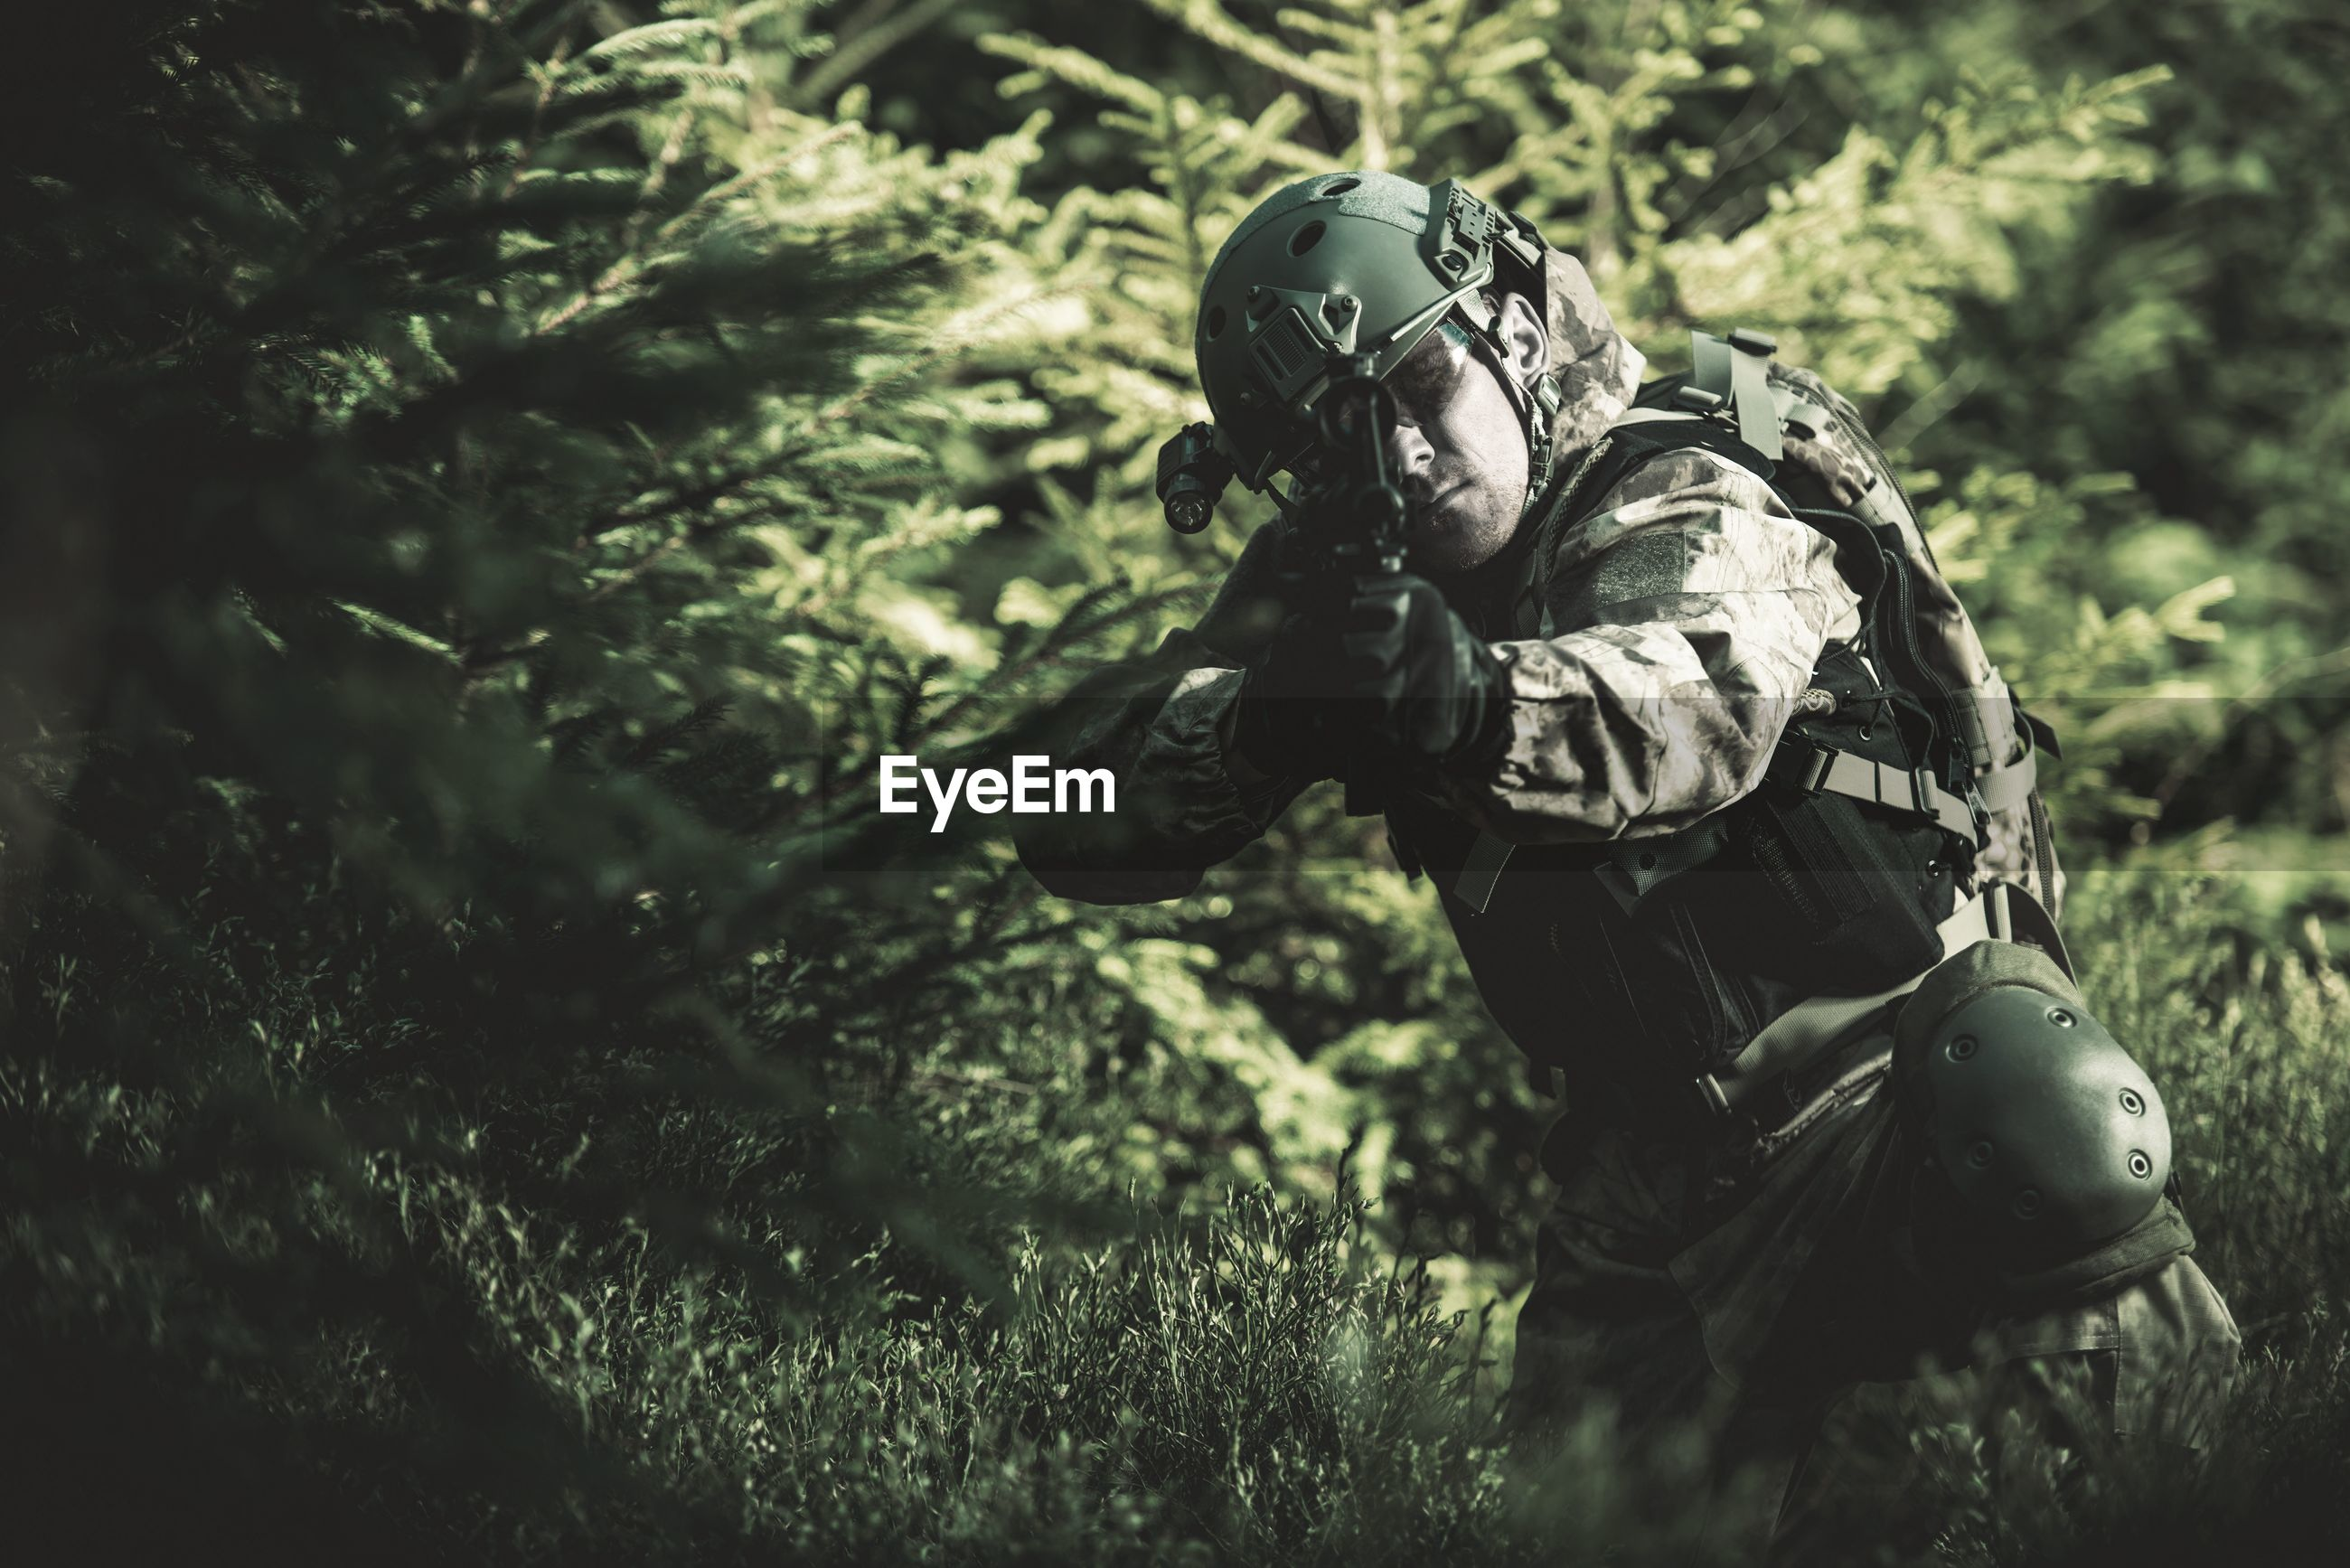 Soldier aiming gun while standing in forest